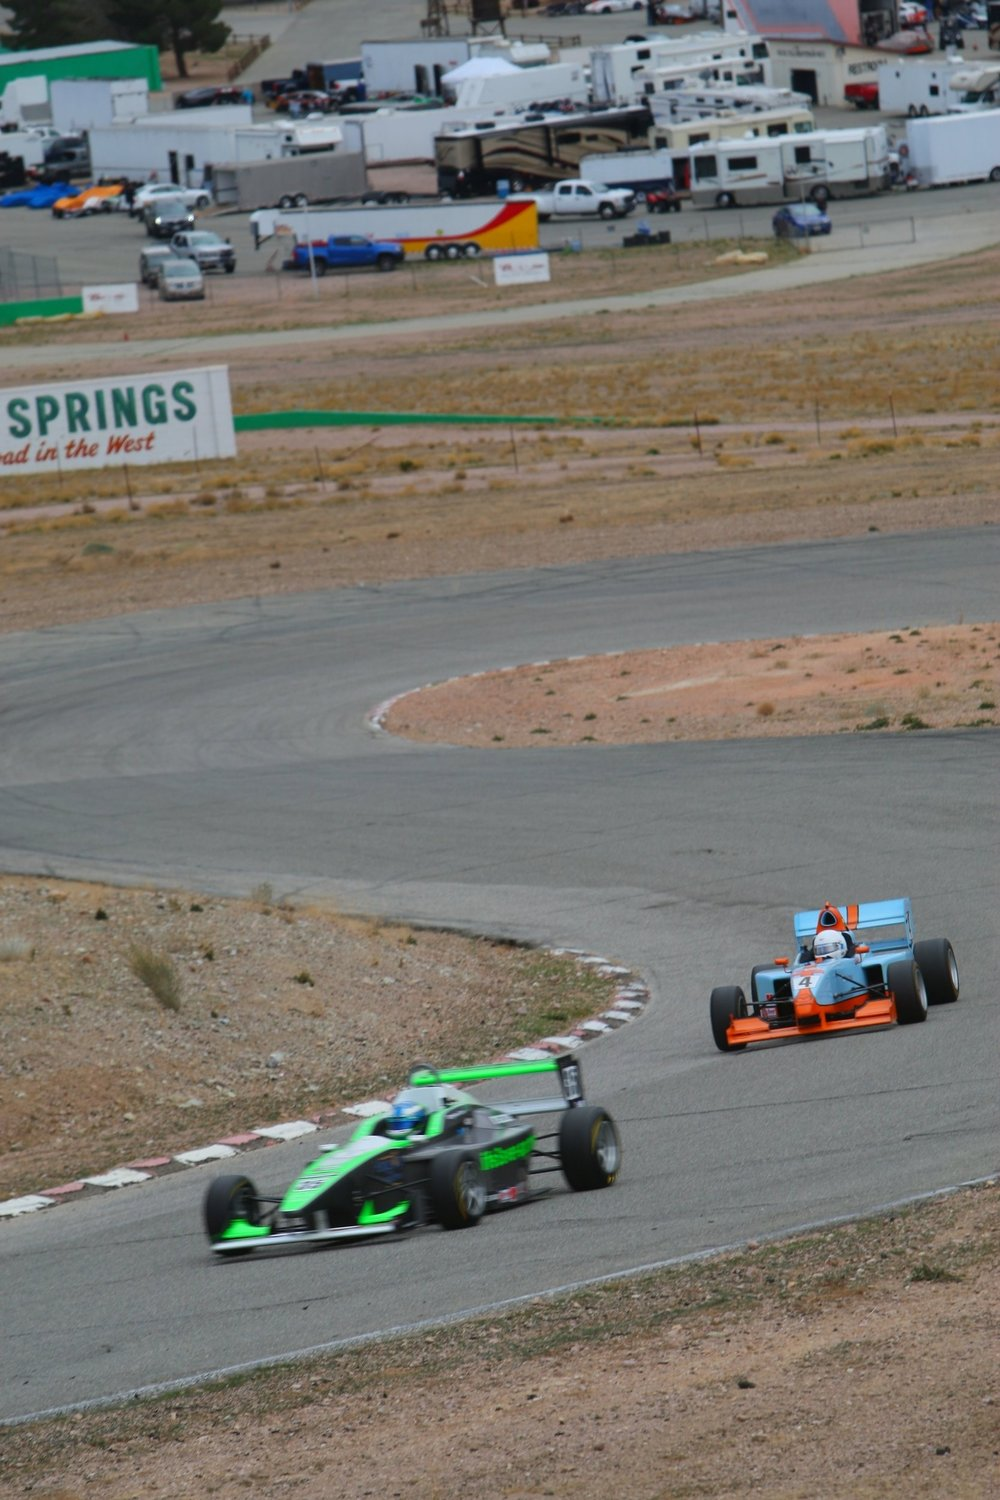 2018-03-March - Mar-17-2018-SCCA Majors (Sat) [2a617e452c1] - Group 6 - Turn 4 - ACS_6173_Mar1818_CaliPhoto.jpg